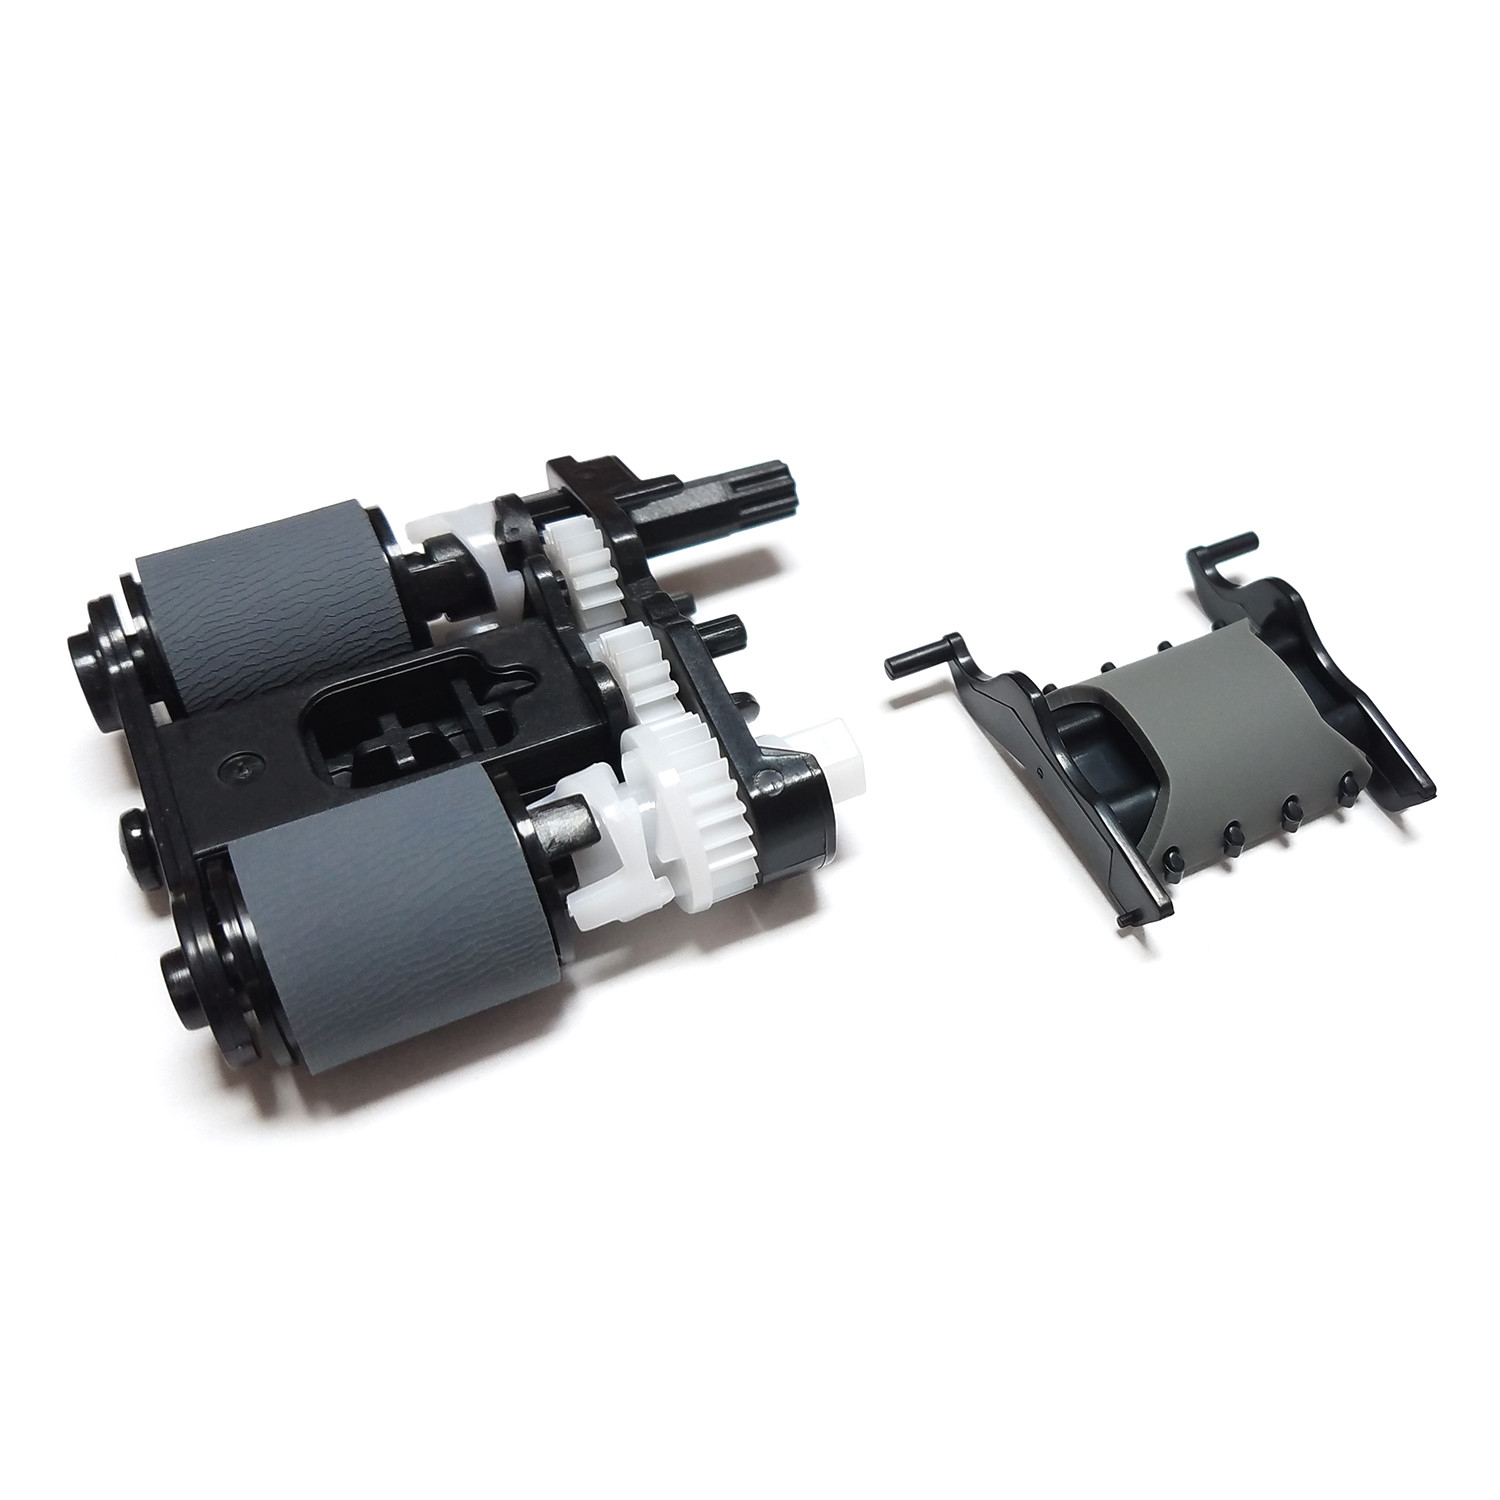 5sets ADF PICKUP roller Separation Pad for HP Color LJ MFP M377dw M477fdn M477fdw M477fnw M426 M281 B3Q10-60105 B3Q10-40080(China)